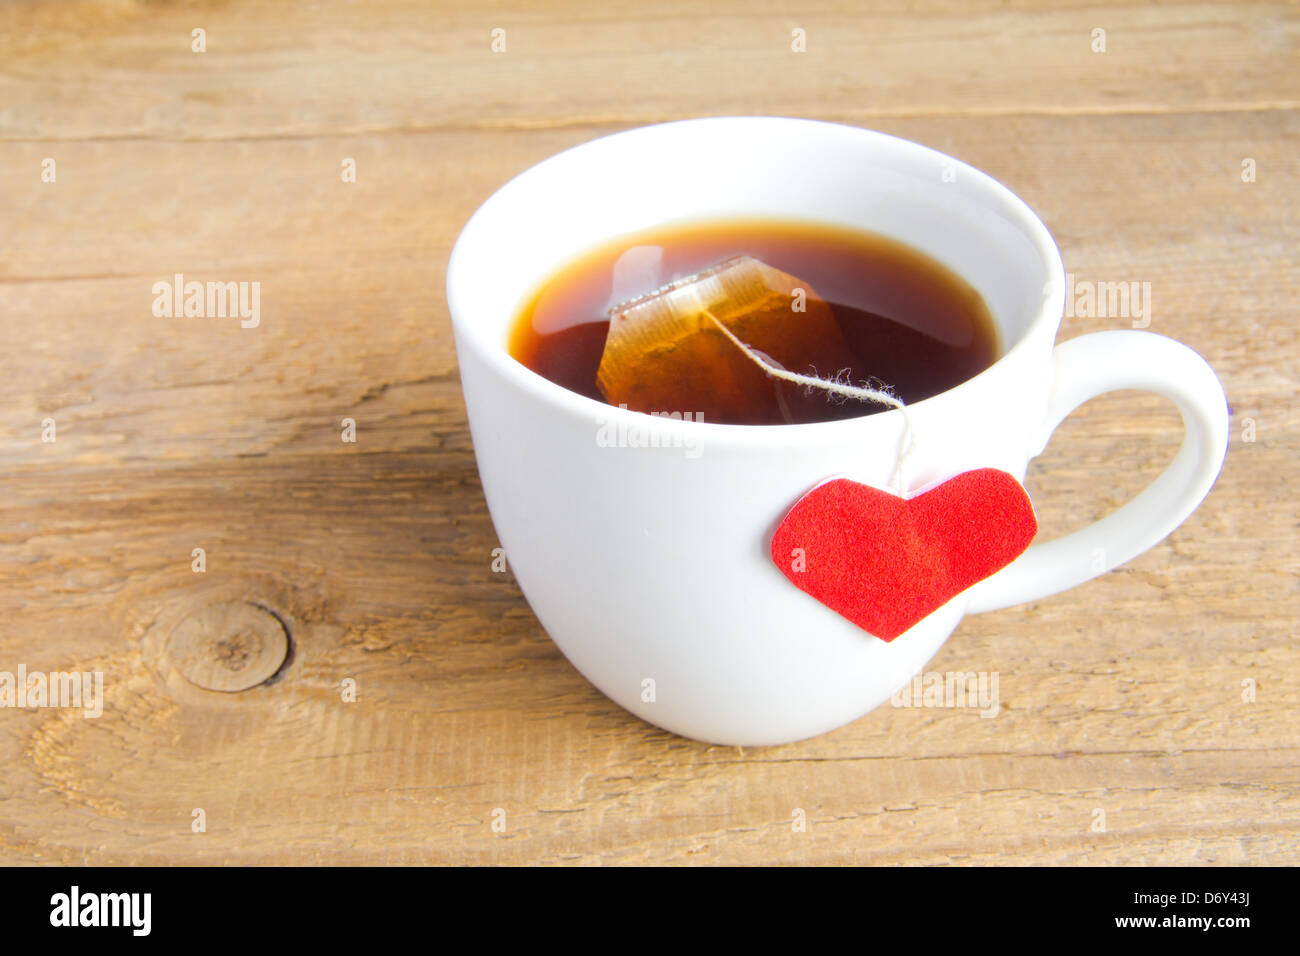 White Cup Of Tea With Red Heart Shaped Label On Teabag On Wooden